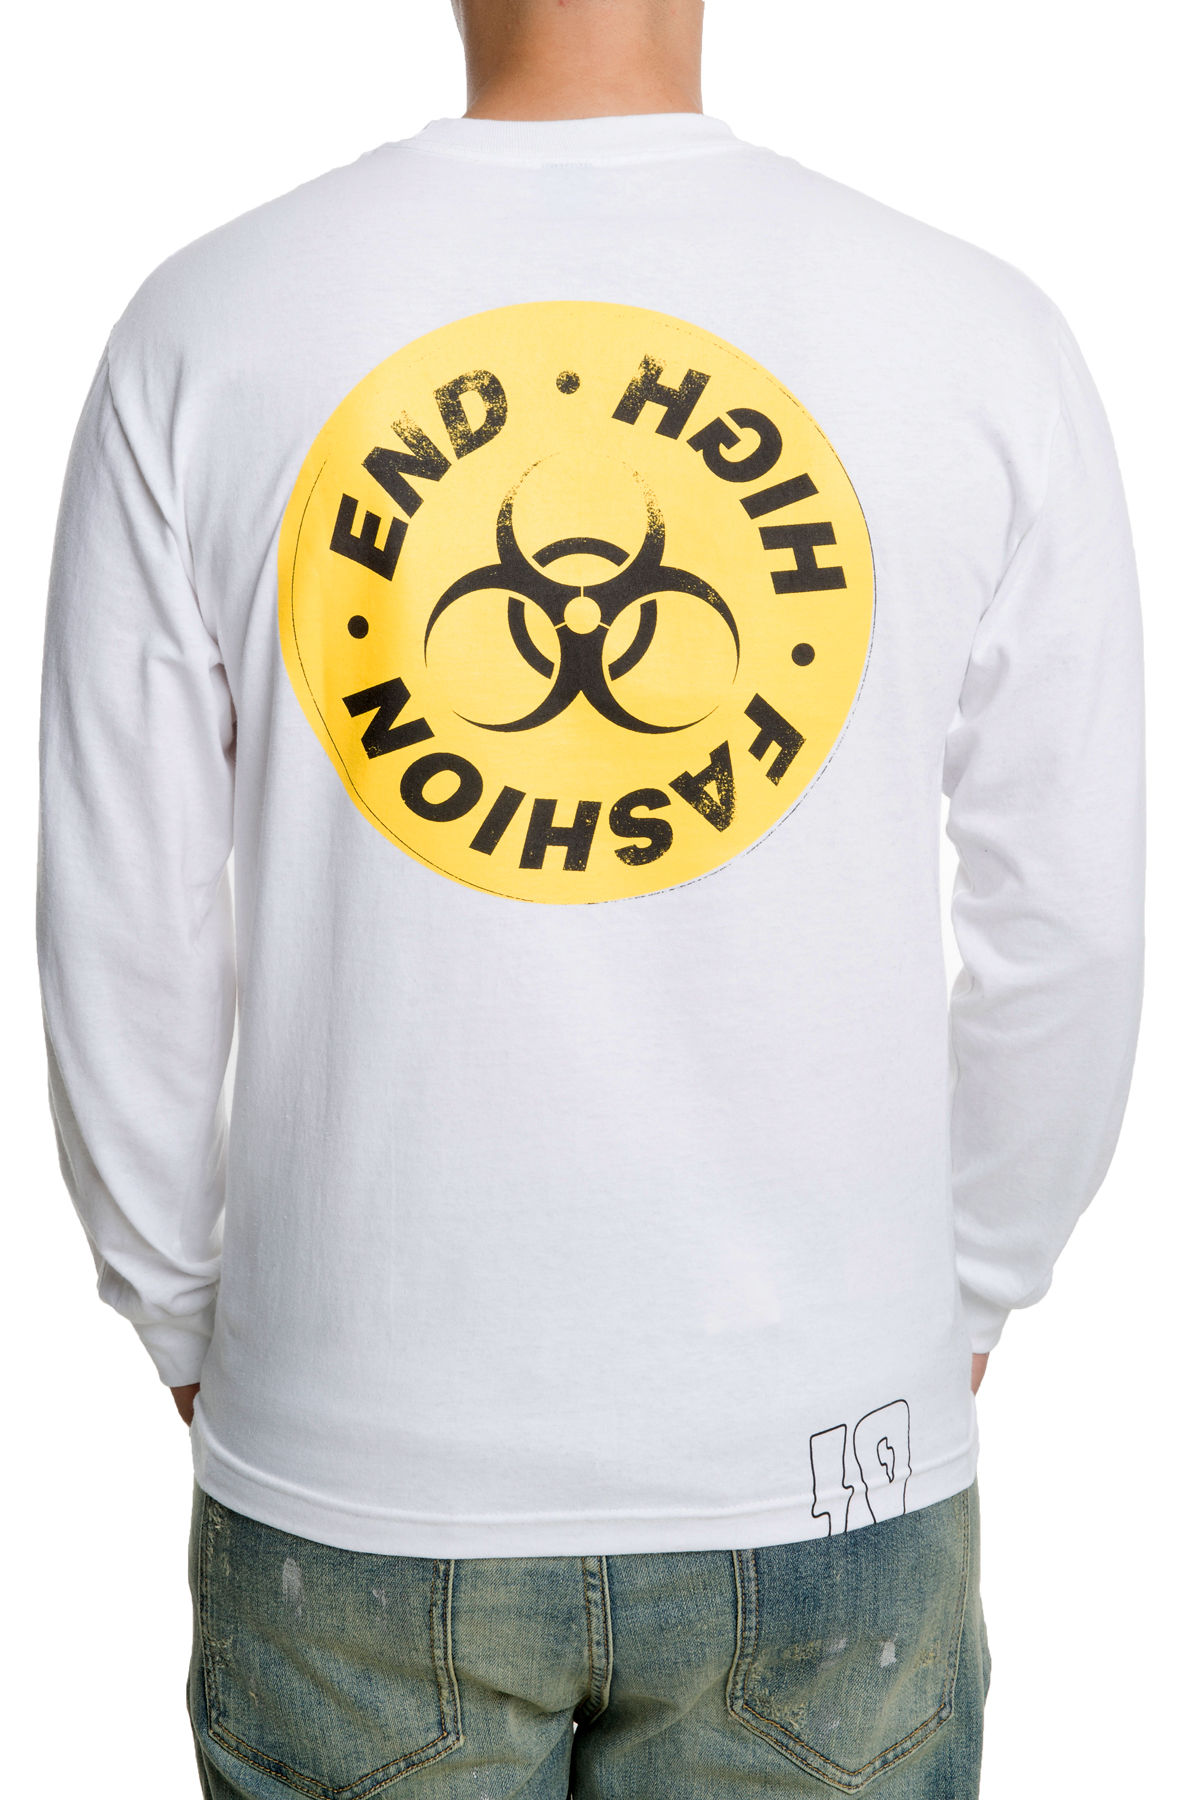 Image of The High End Toxicity L/S Tee in White